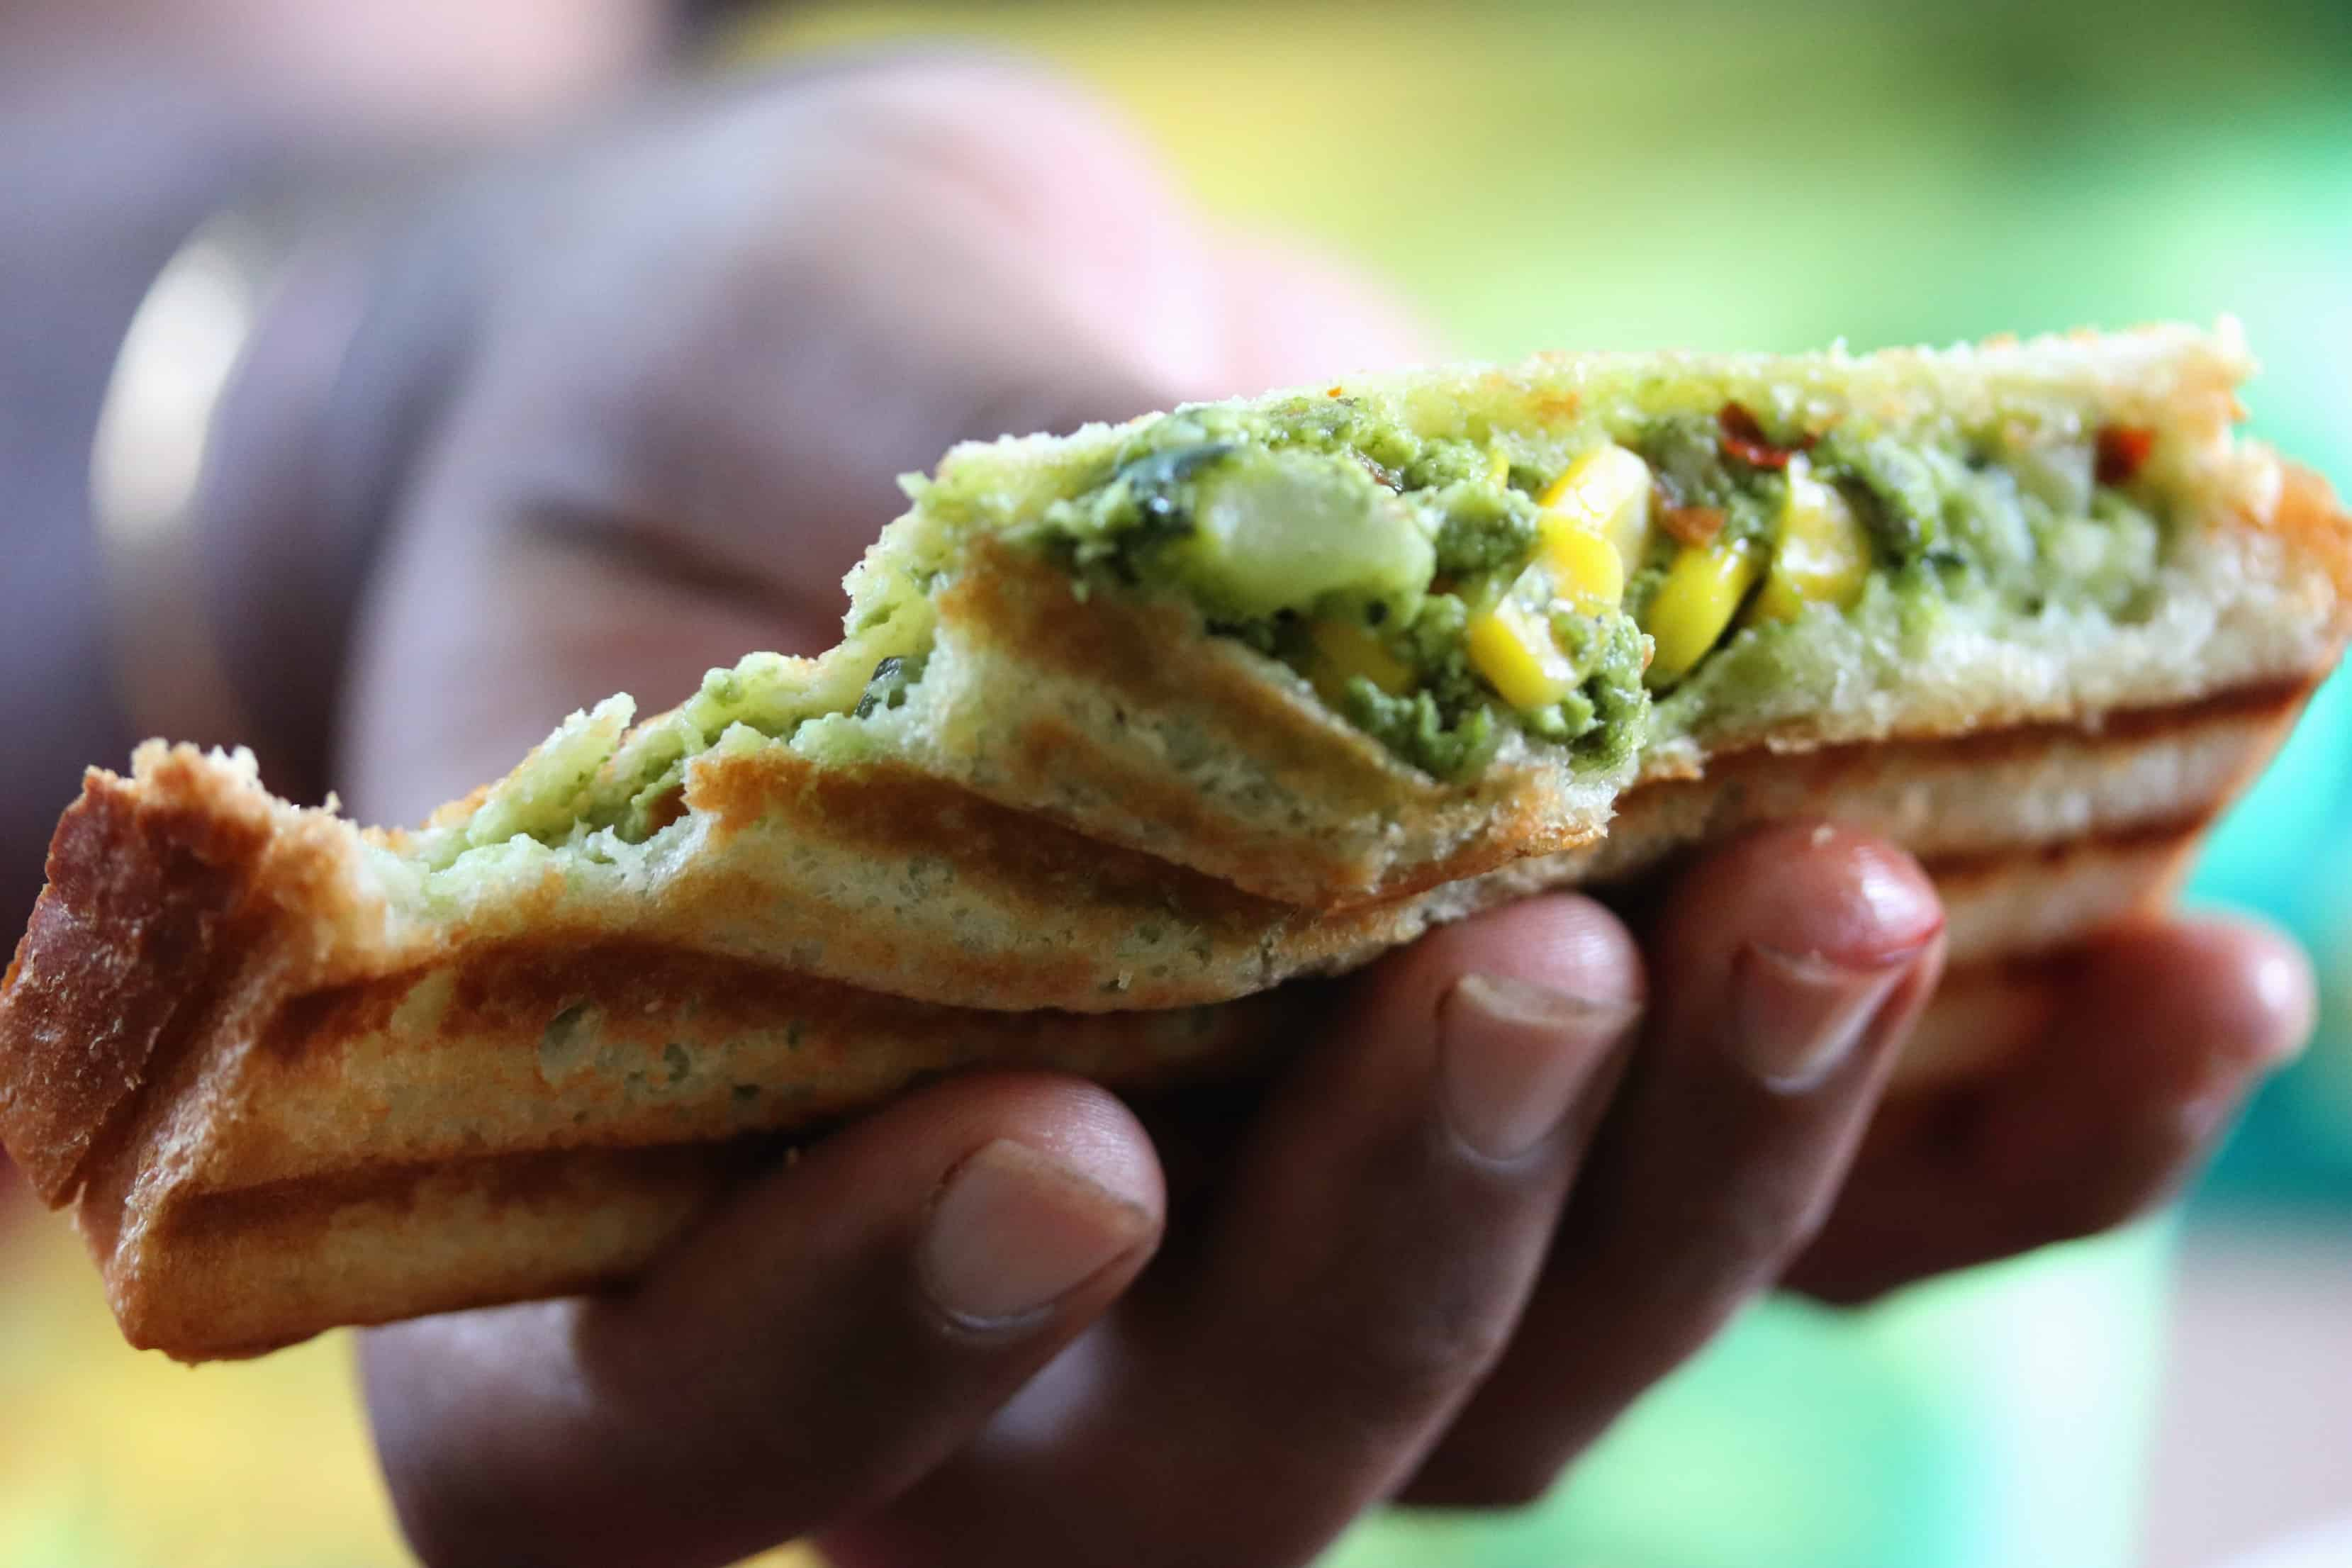 Zucchini, cottage cheese, mushroom and corn along with palak or spinach puree form the filling for this lipsmacking and filling grilled sandwich recipe. Grilled with a knob of butter or ghee, served hot with green chutney or tomato ketchup, this is a perfect recipe that can be prepared and stored in the refrigerator (the filling) a day earlier to plan the kids tiffin box the next day along or carry as a travel snack for outings or treks.